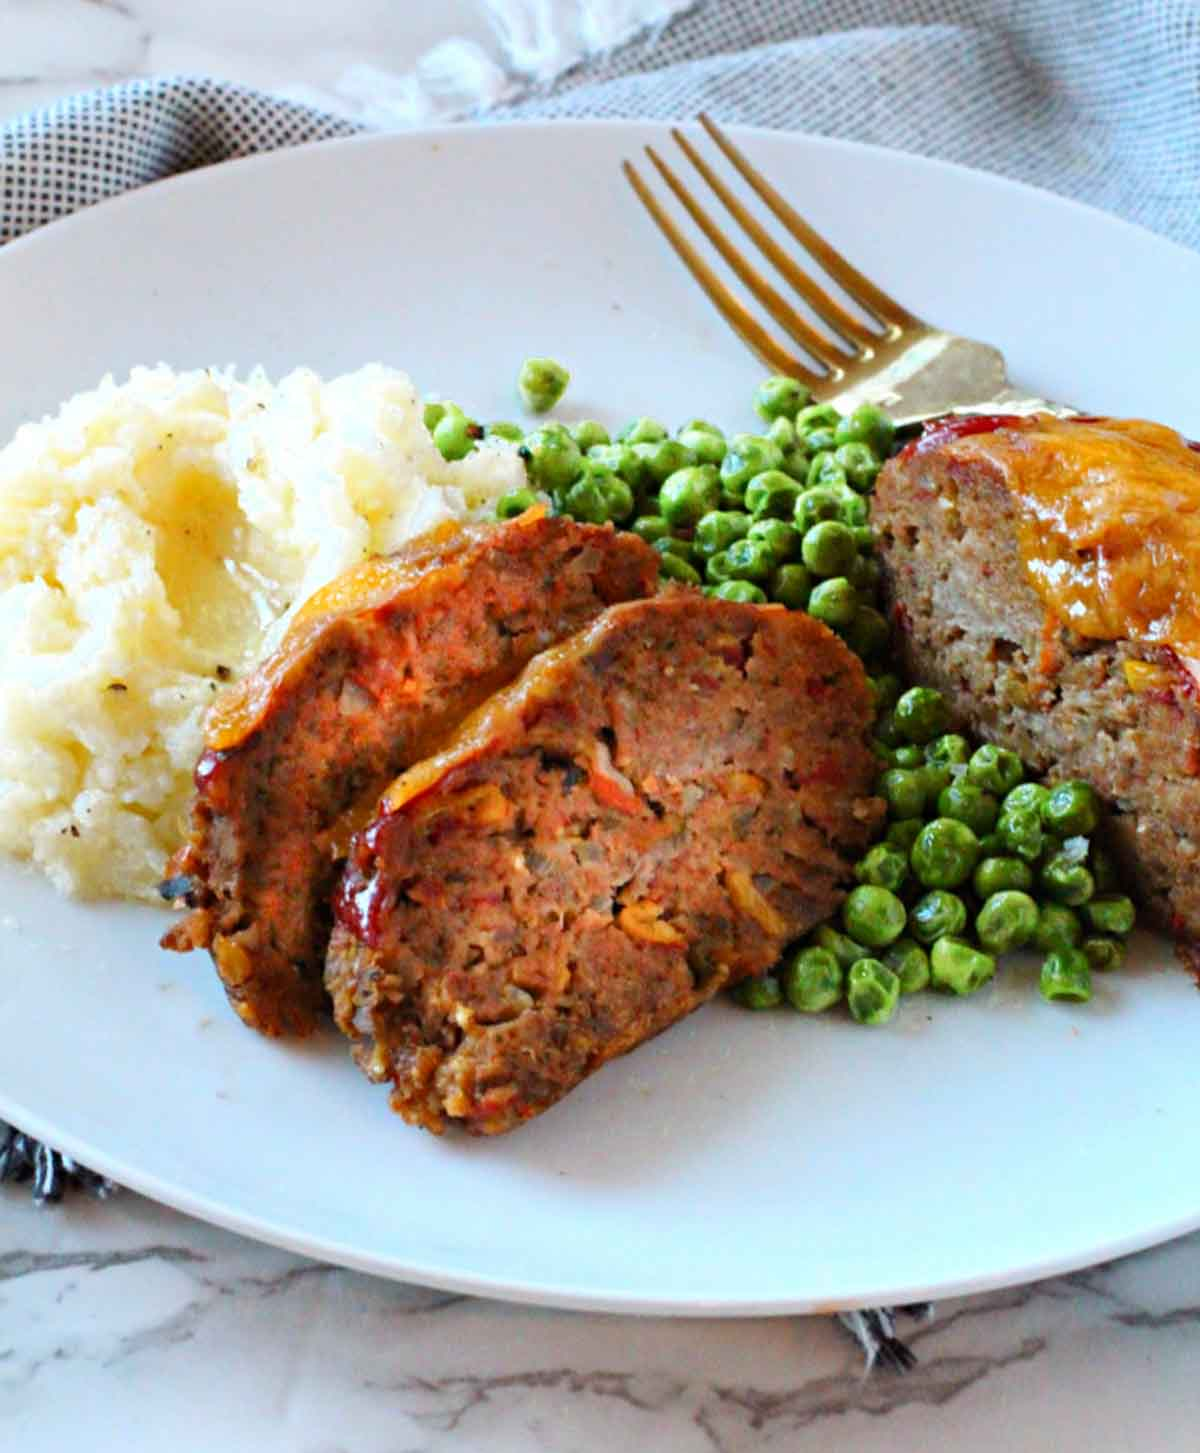 Individual meatloaf recipe for spicy meatloaf. Served on a white plate with mashed potatoes and peas.